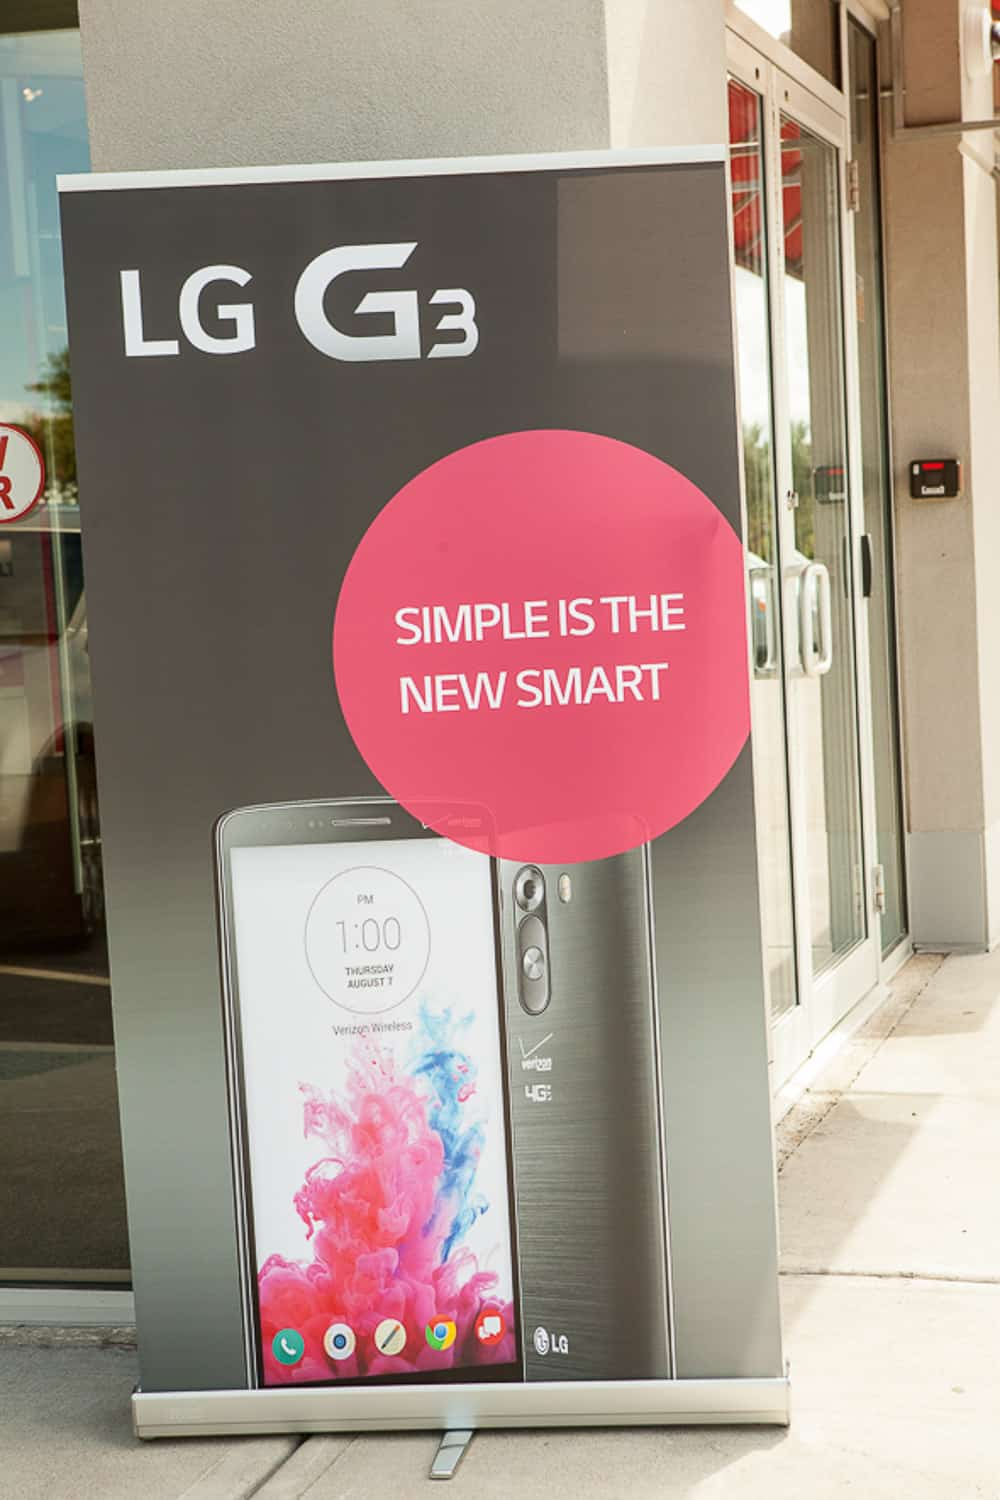 An event photograph of signage for the LG G3 launch.